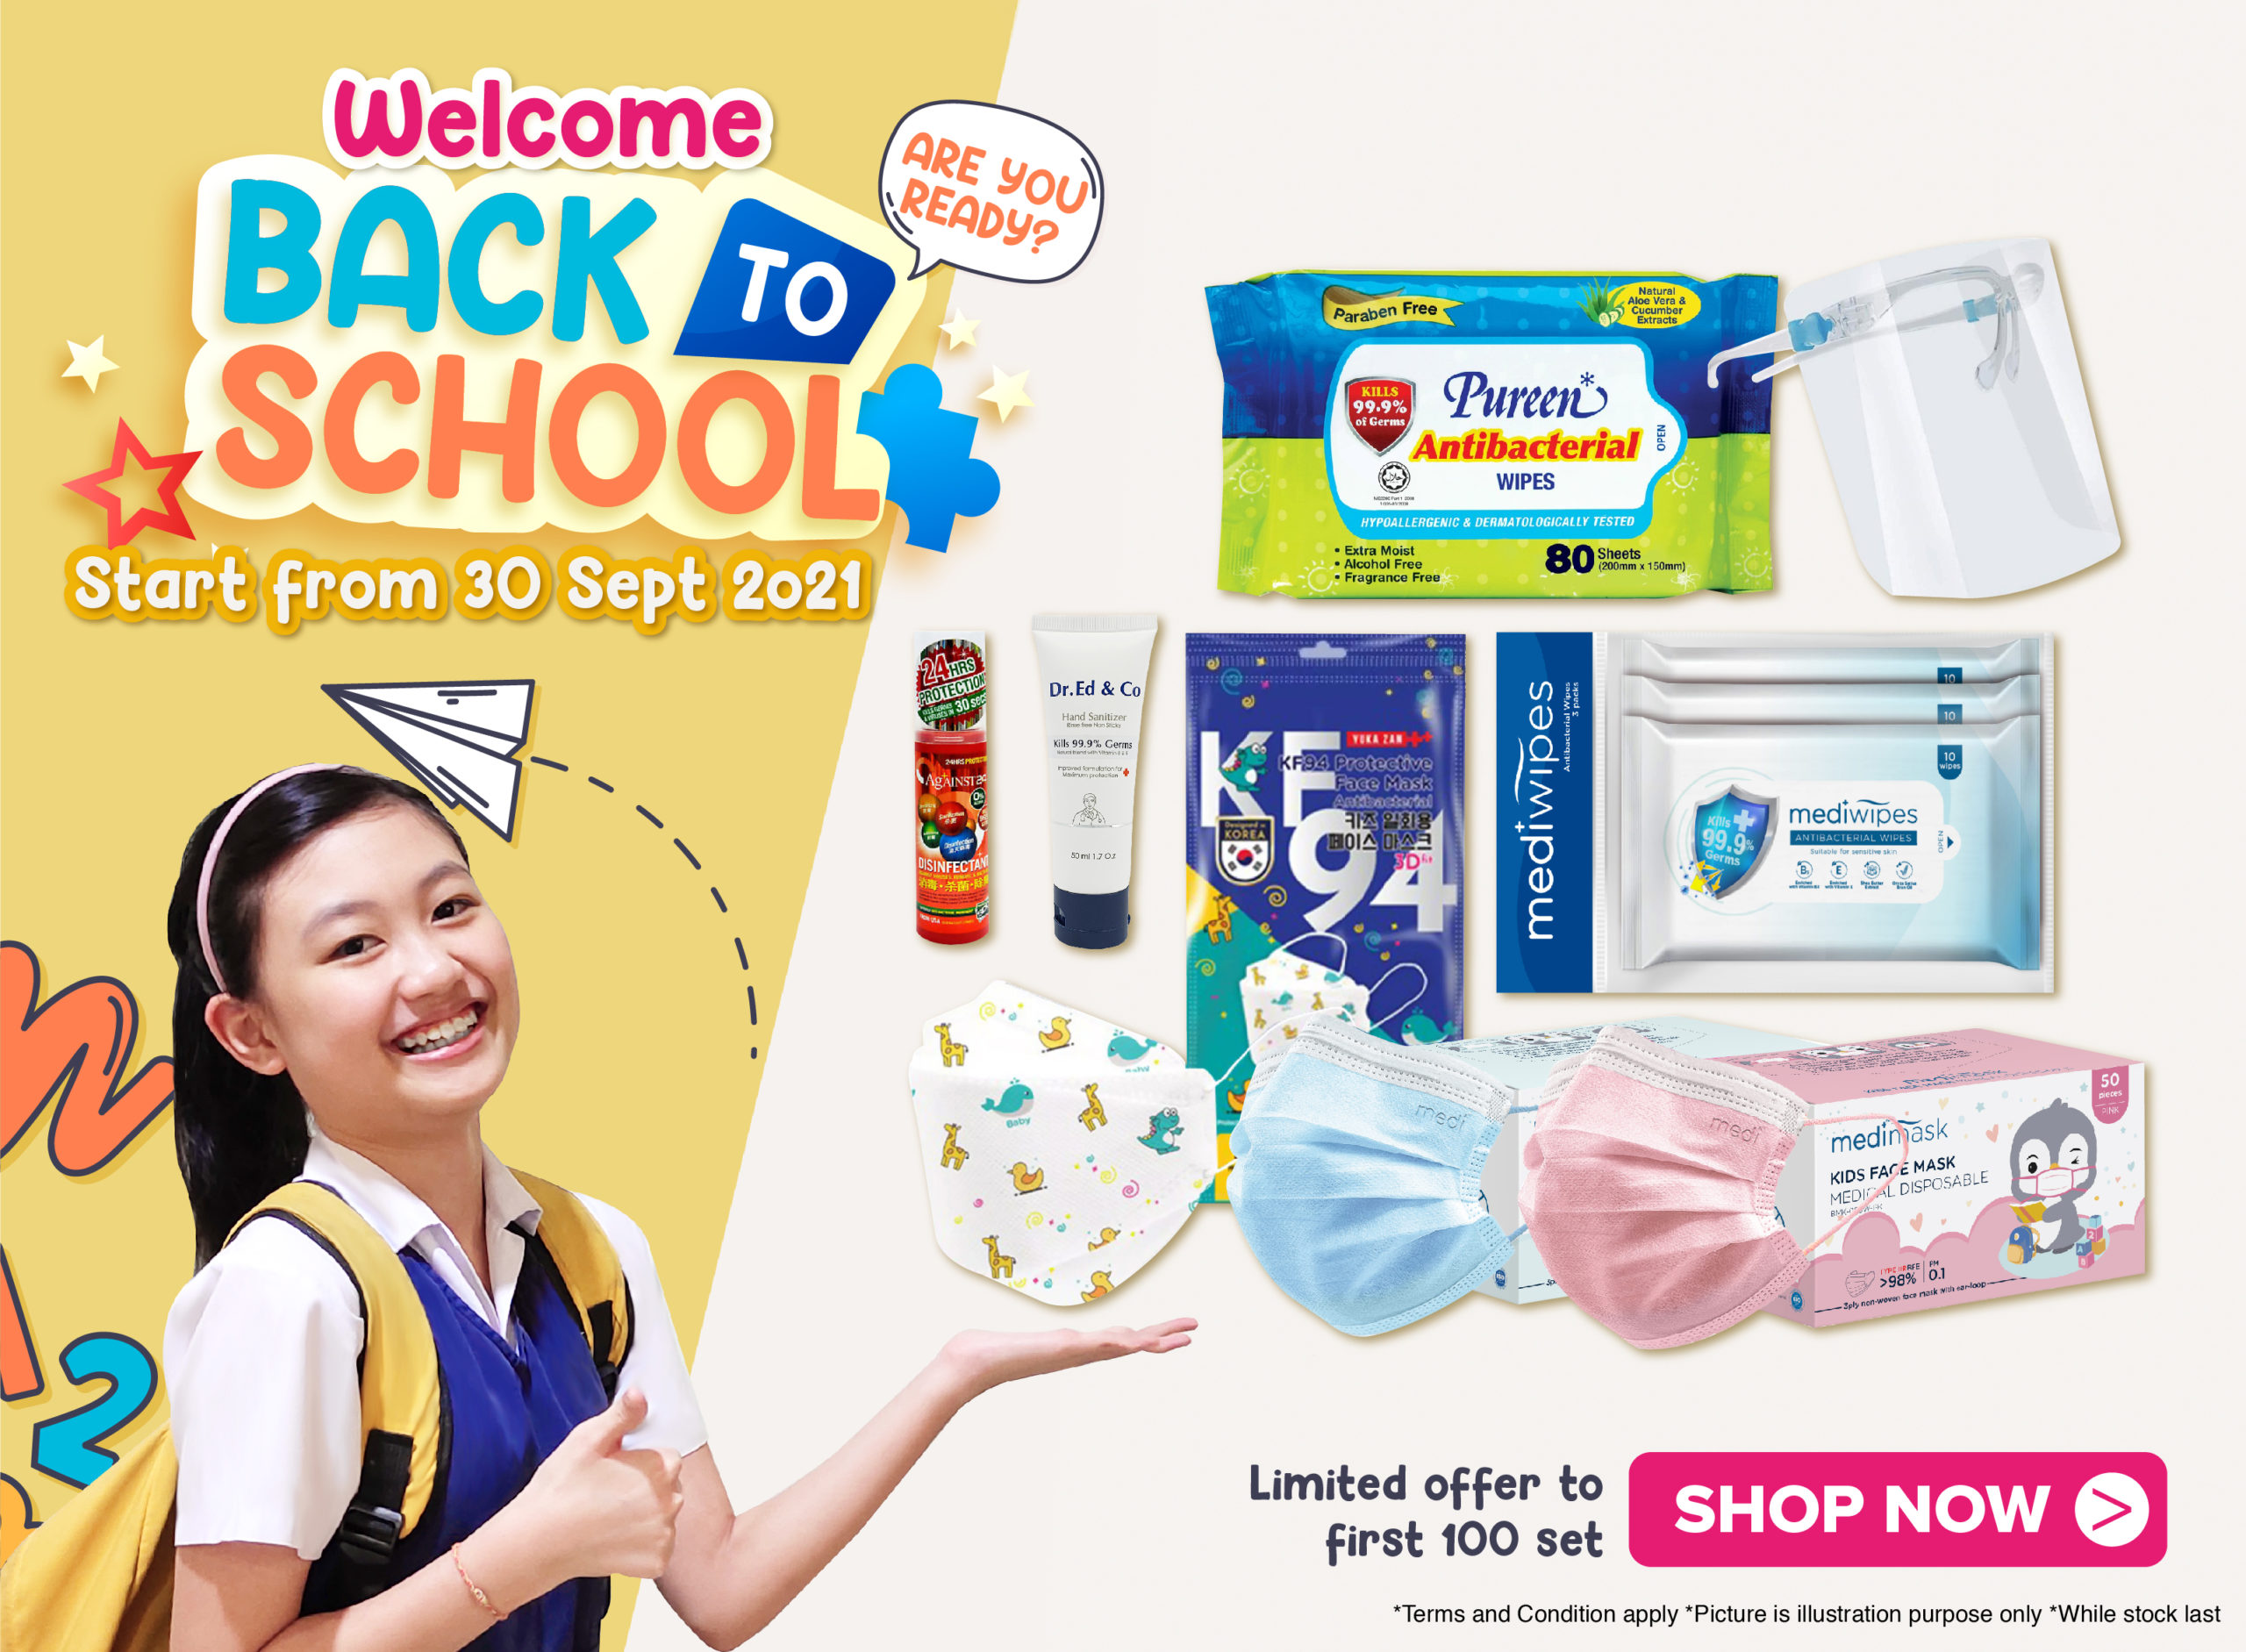 https://www.alpropharmacy.com/oneclick/category/againstcovid19/back-to-school/